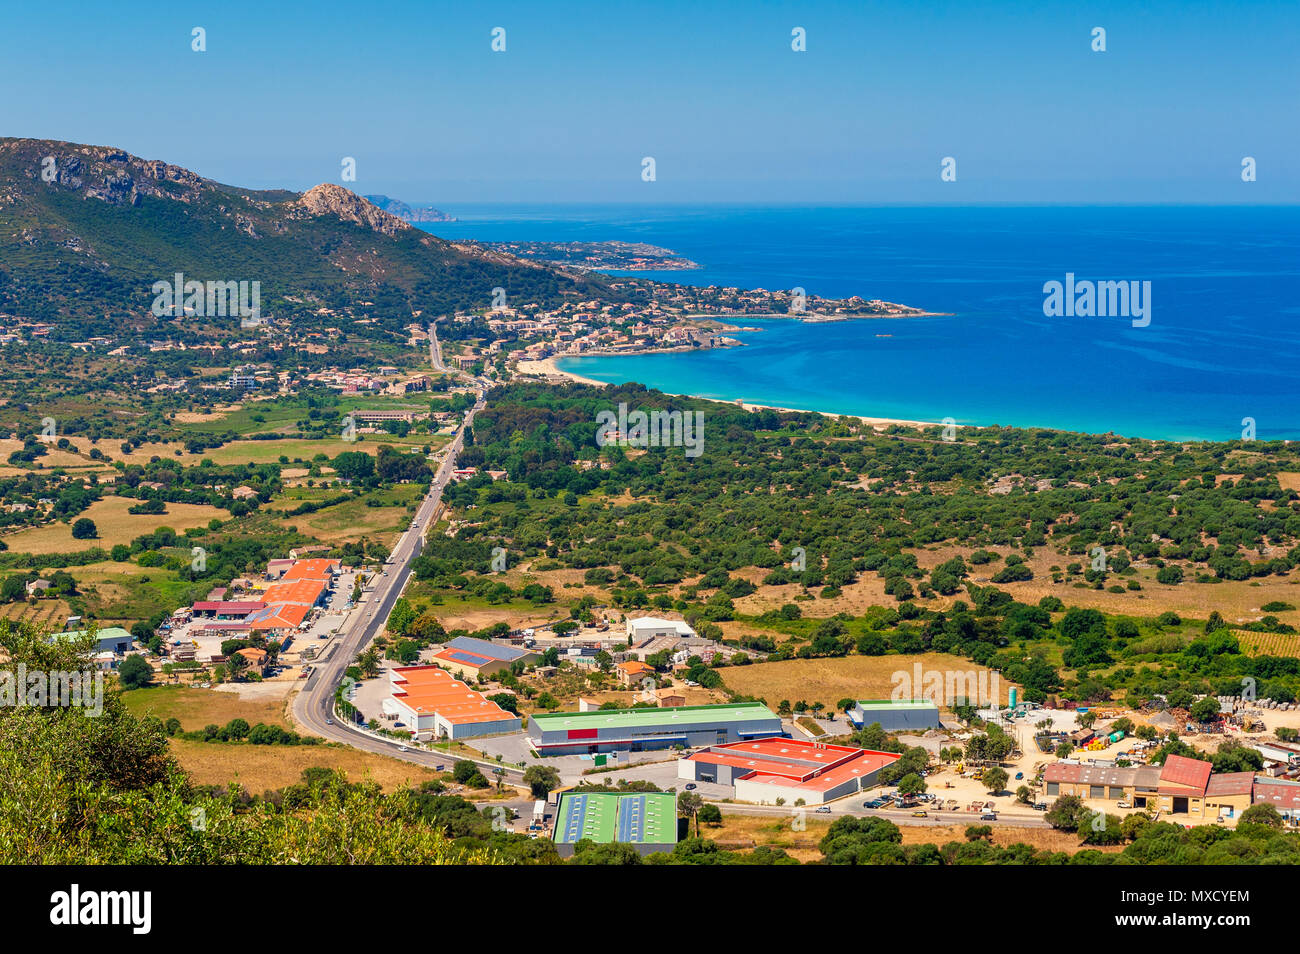 High angle view on the Village of Algajola, Corsica, France - Stock Image